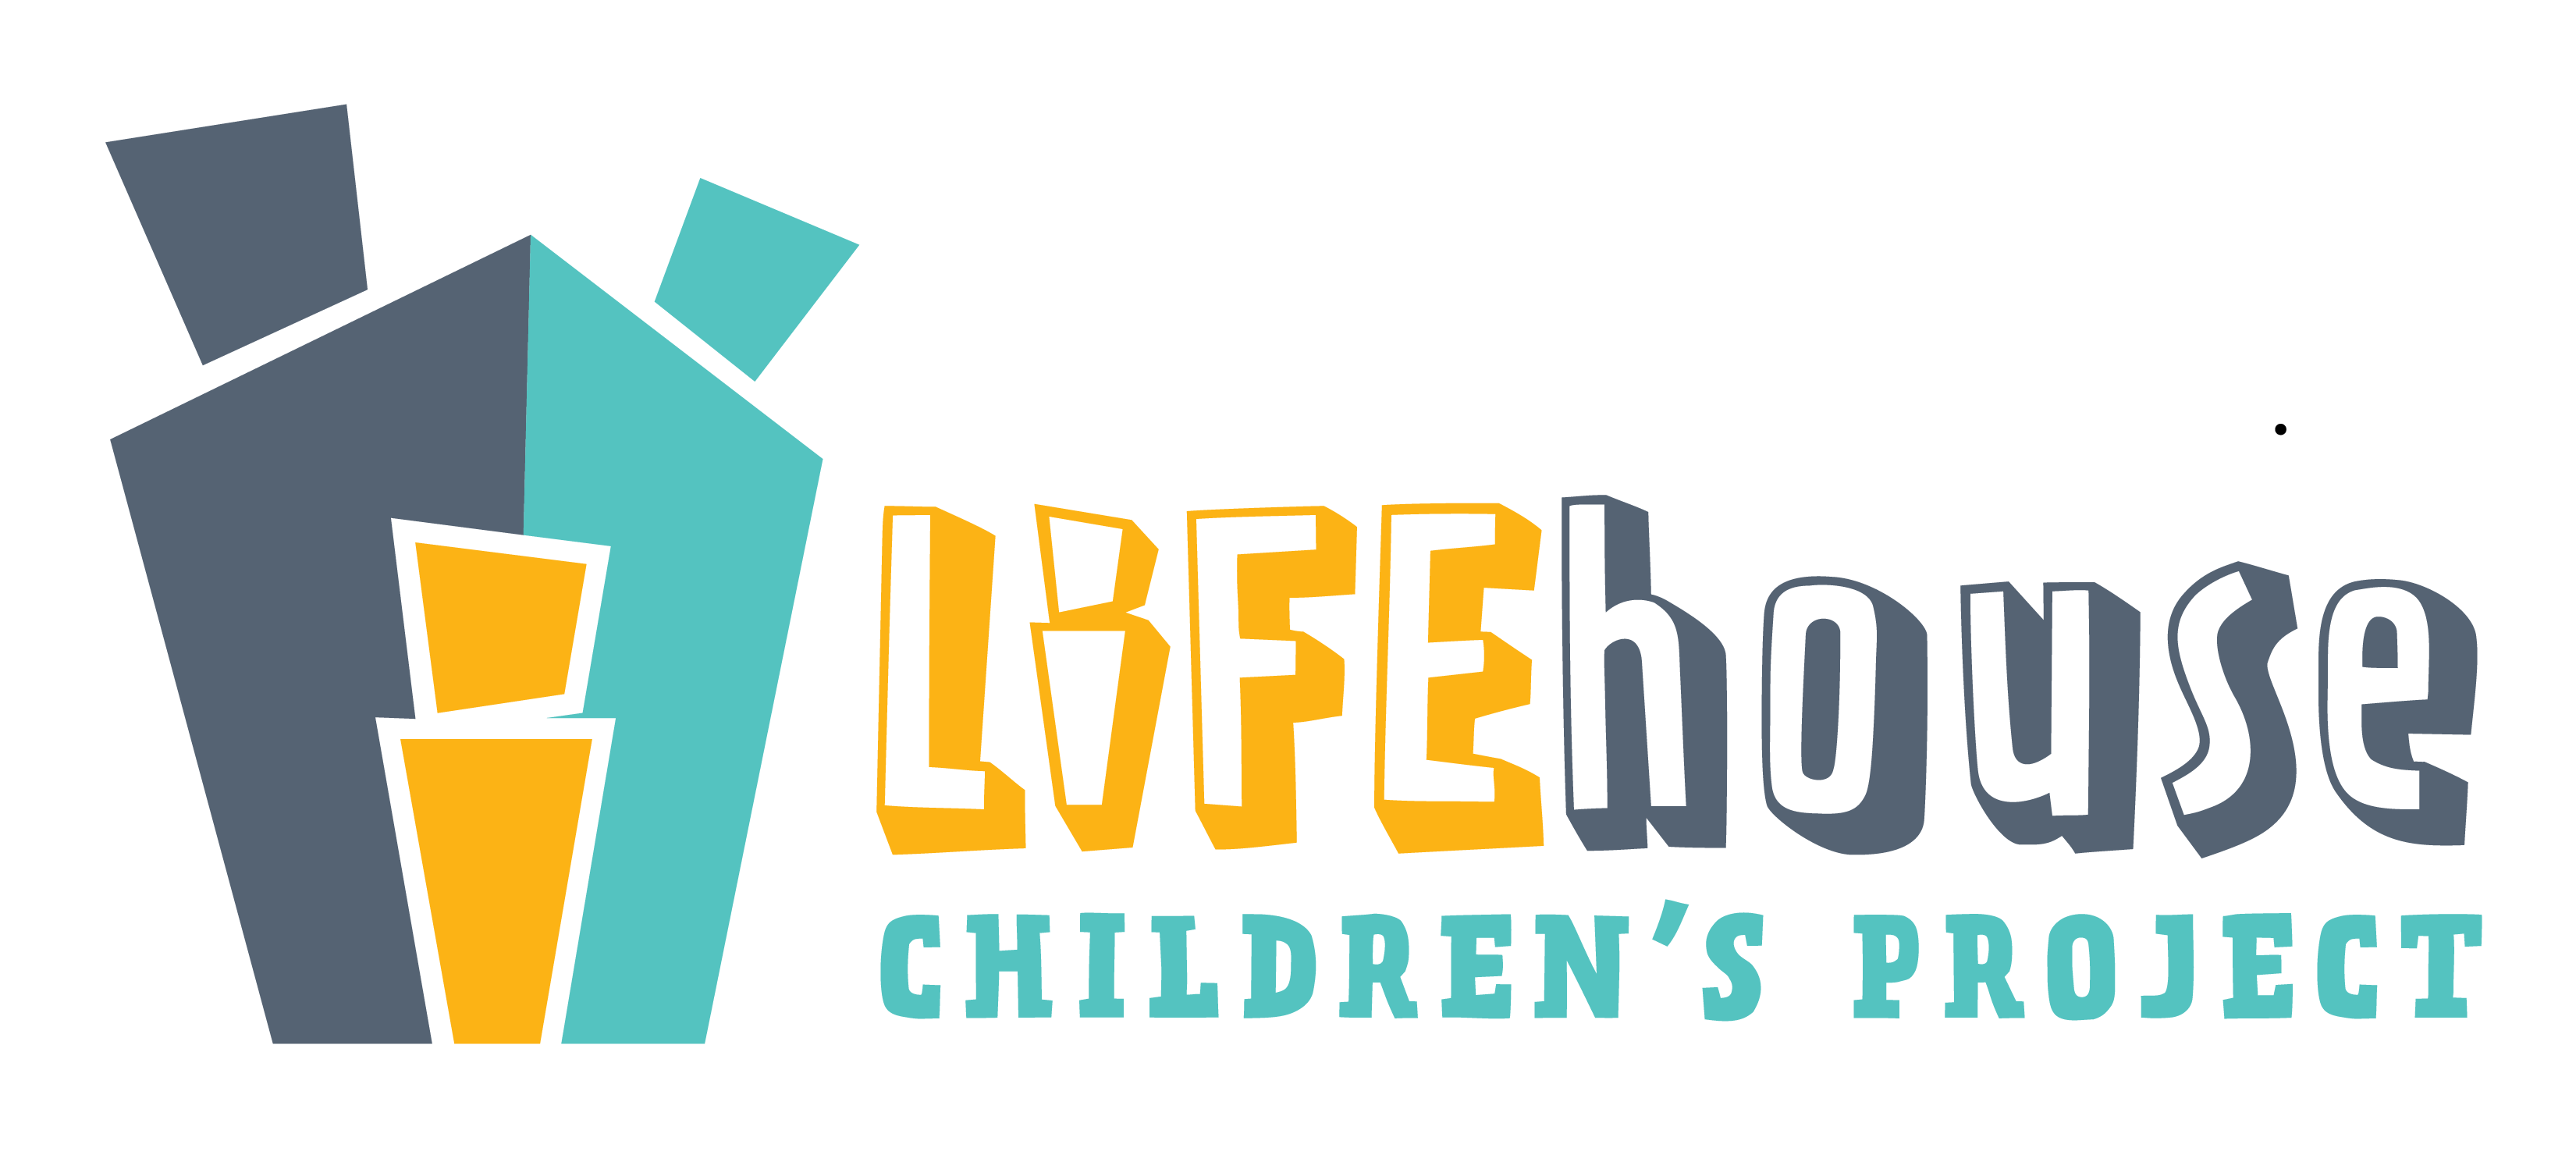 LIFEhouse Children's Project